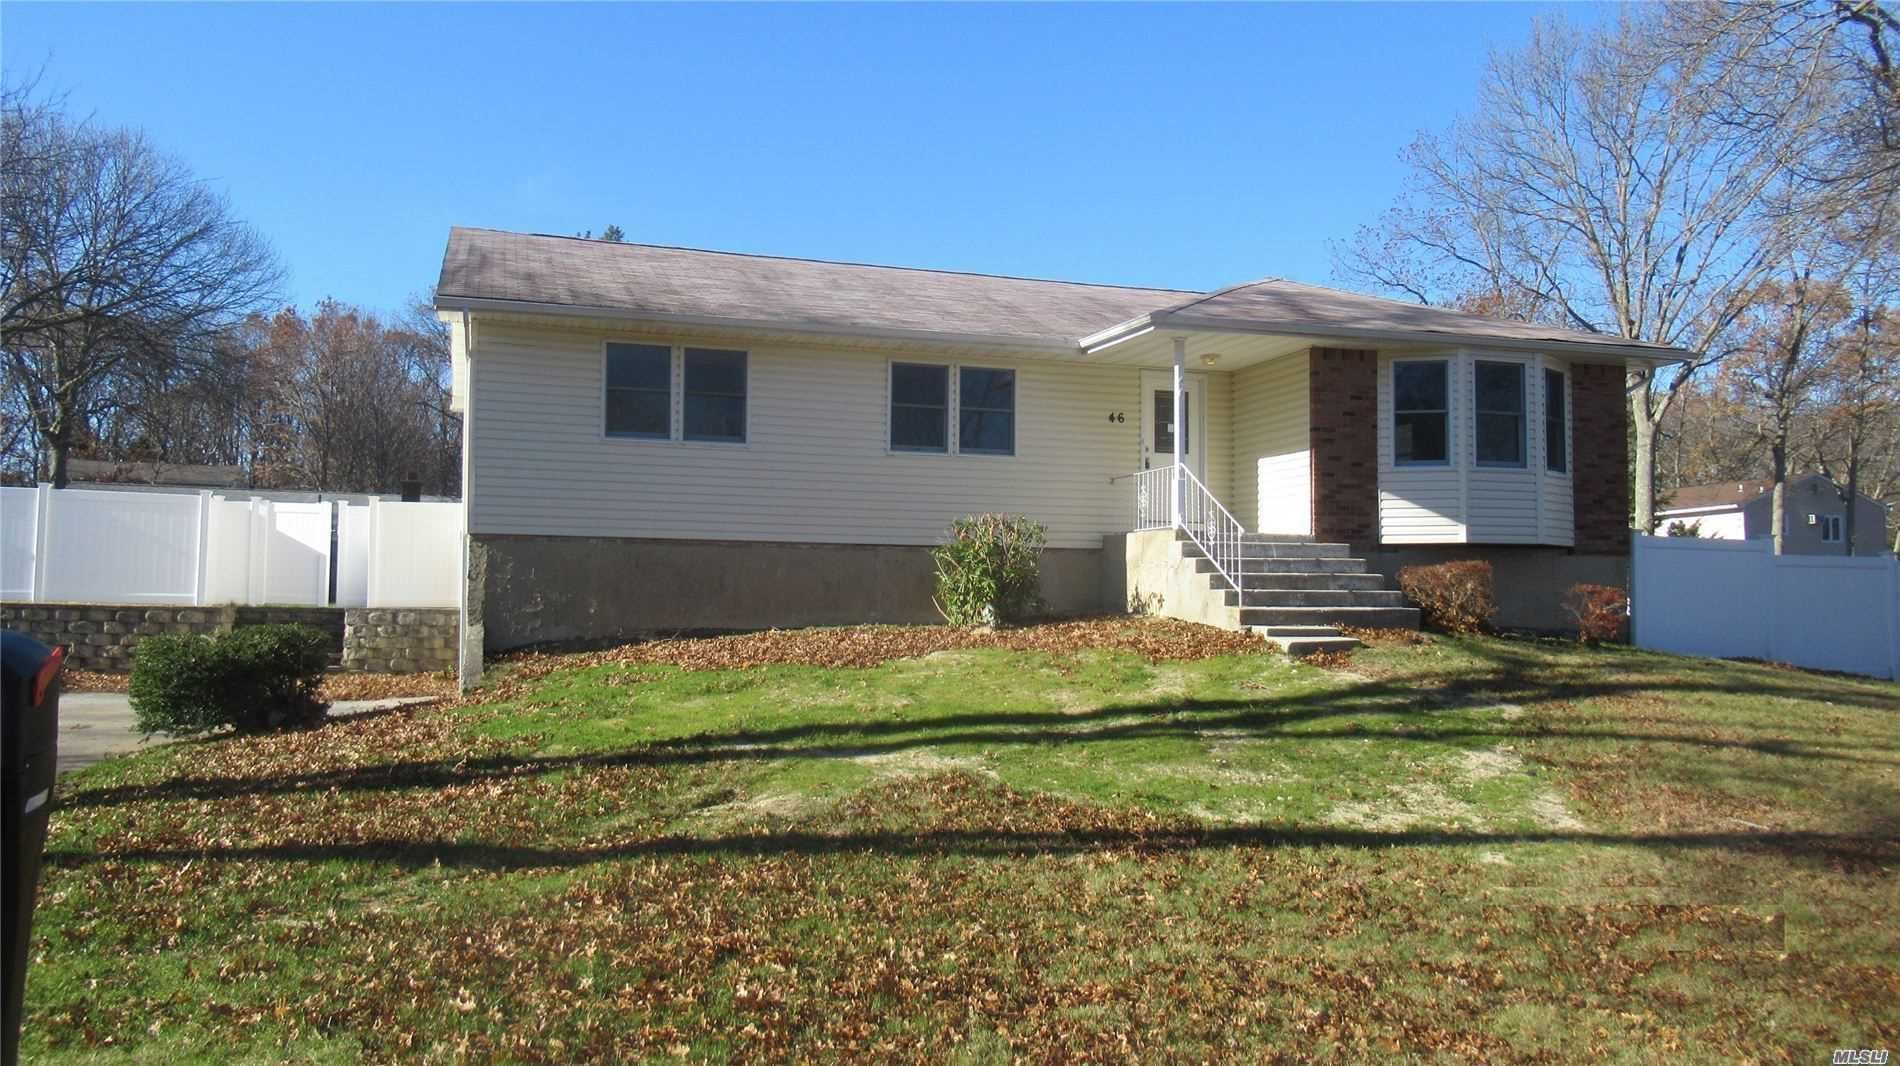 46 N Suffolk Drive, Rocky Point, NY 11778 - MLS#: 3214005